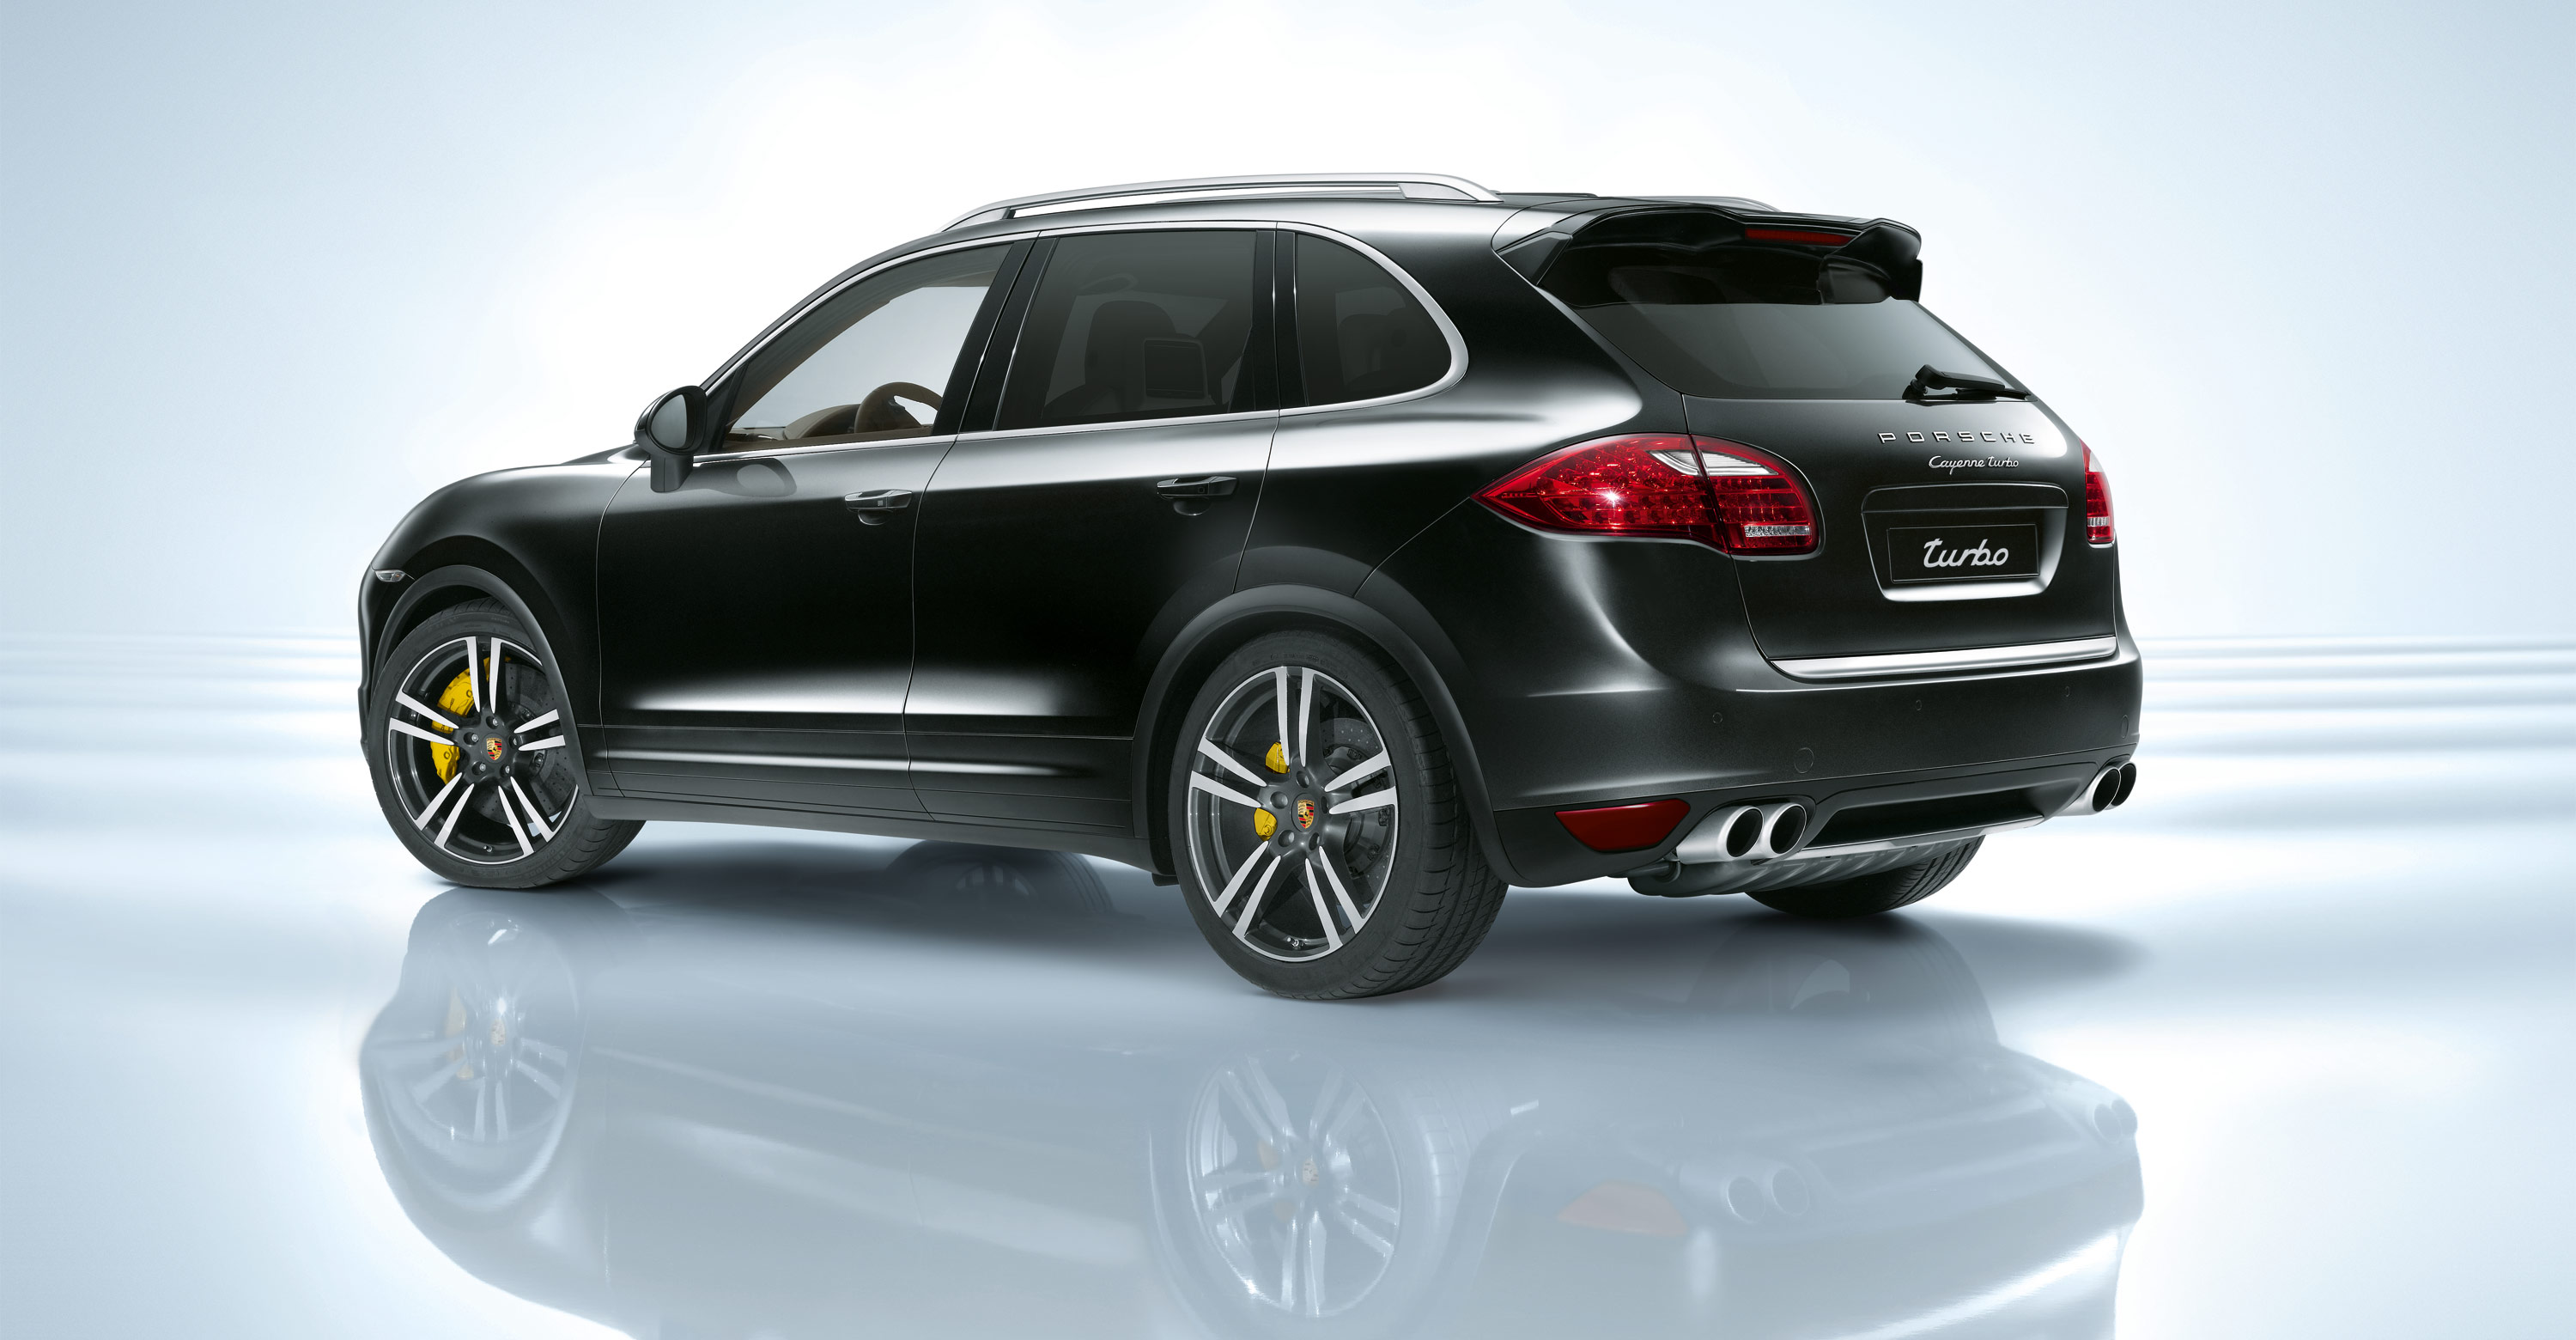 3dtuning of porsche cayenne crossover 2012 unique on line car configurator for